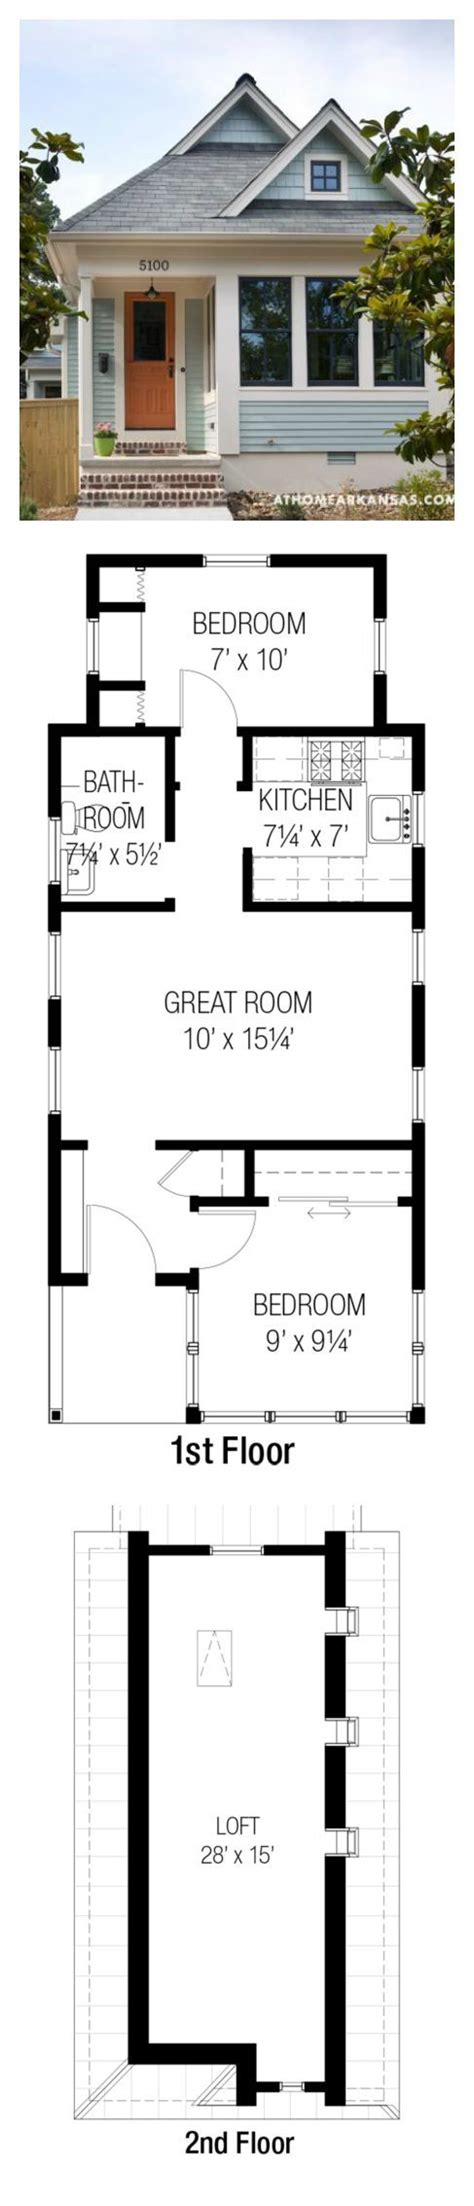 1 bed 1 bath house 1 bedroom 2 bath house plan 1 bedroom bathroom house plans